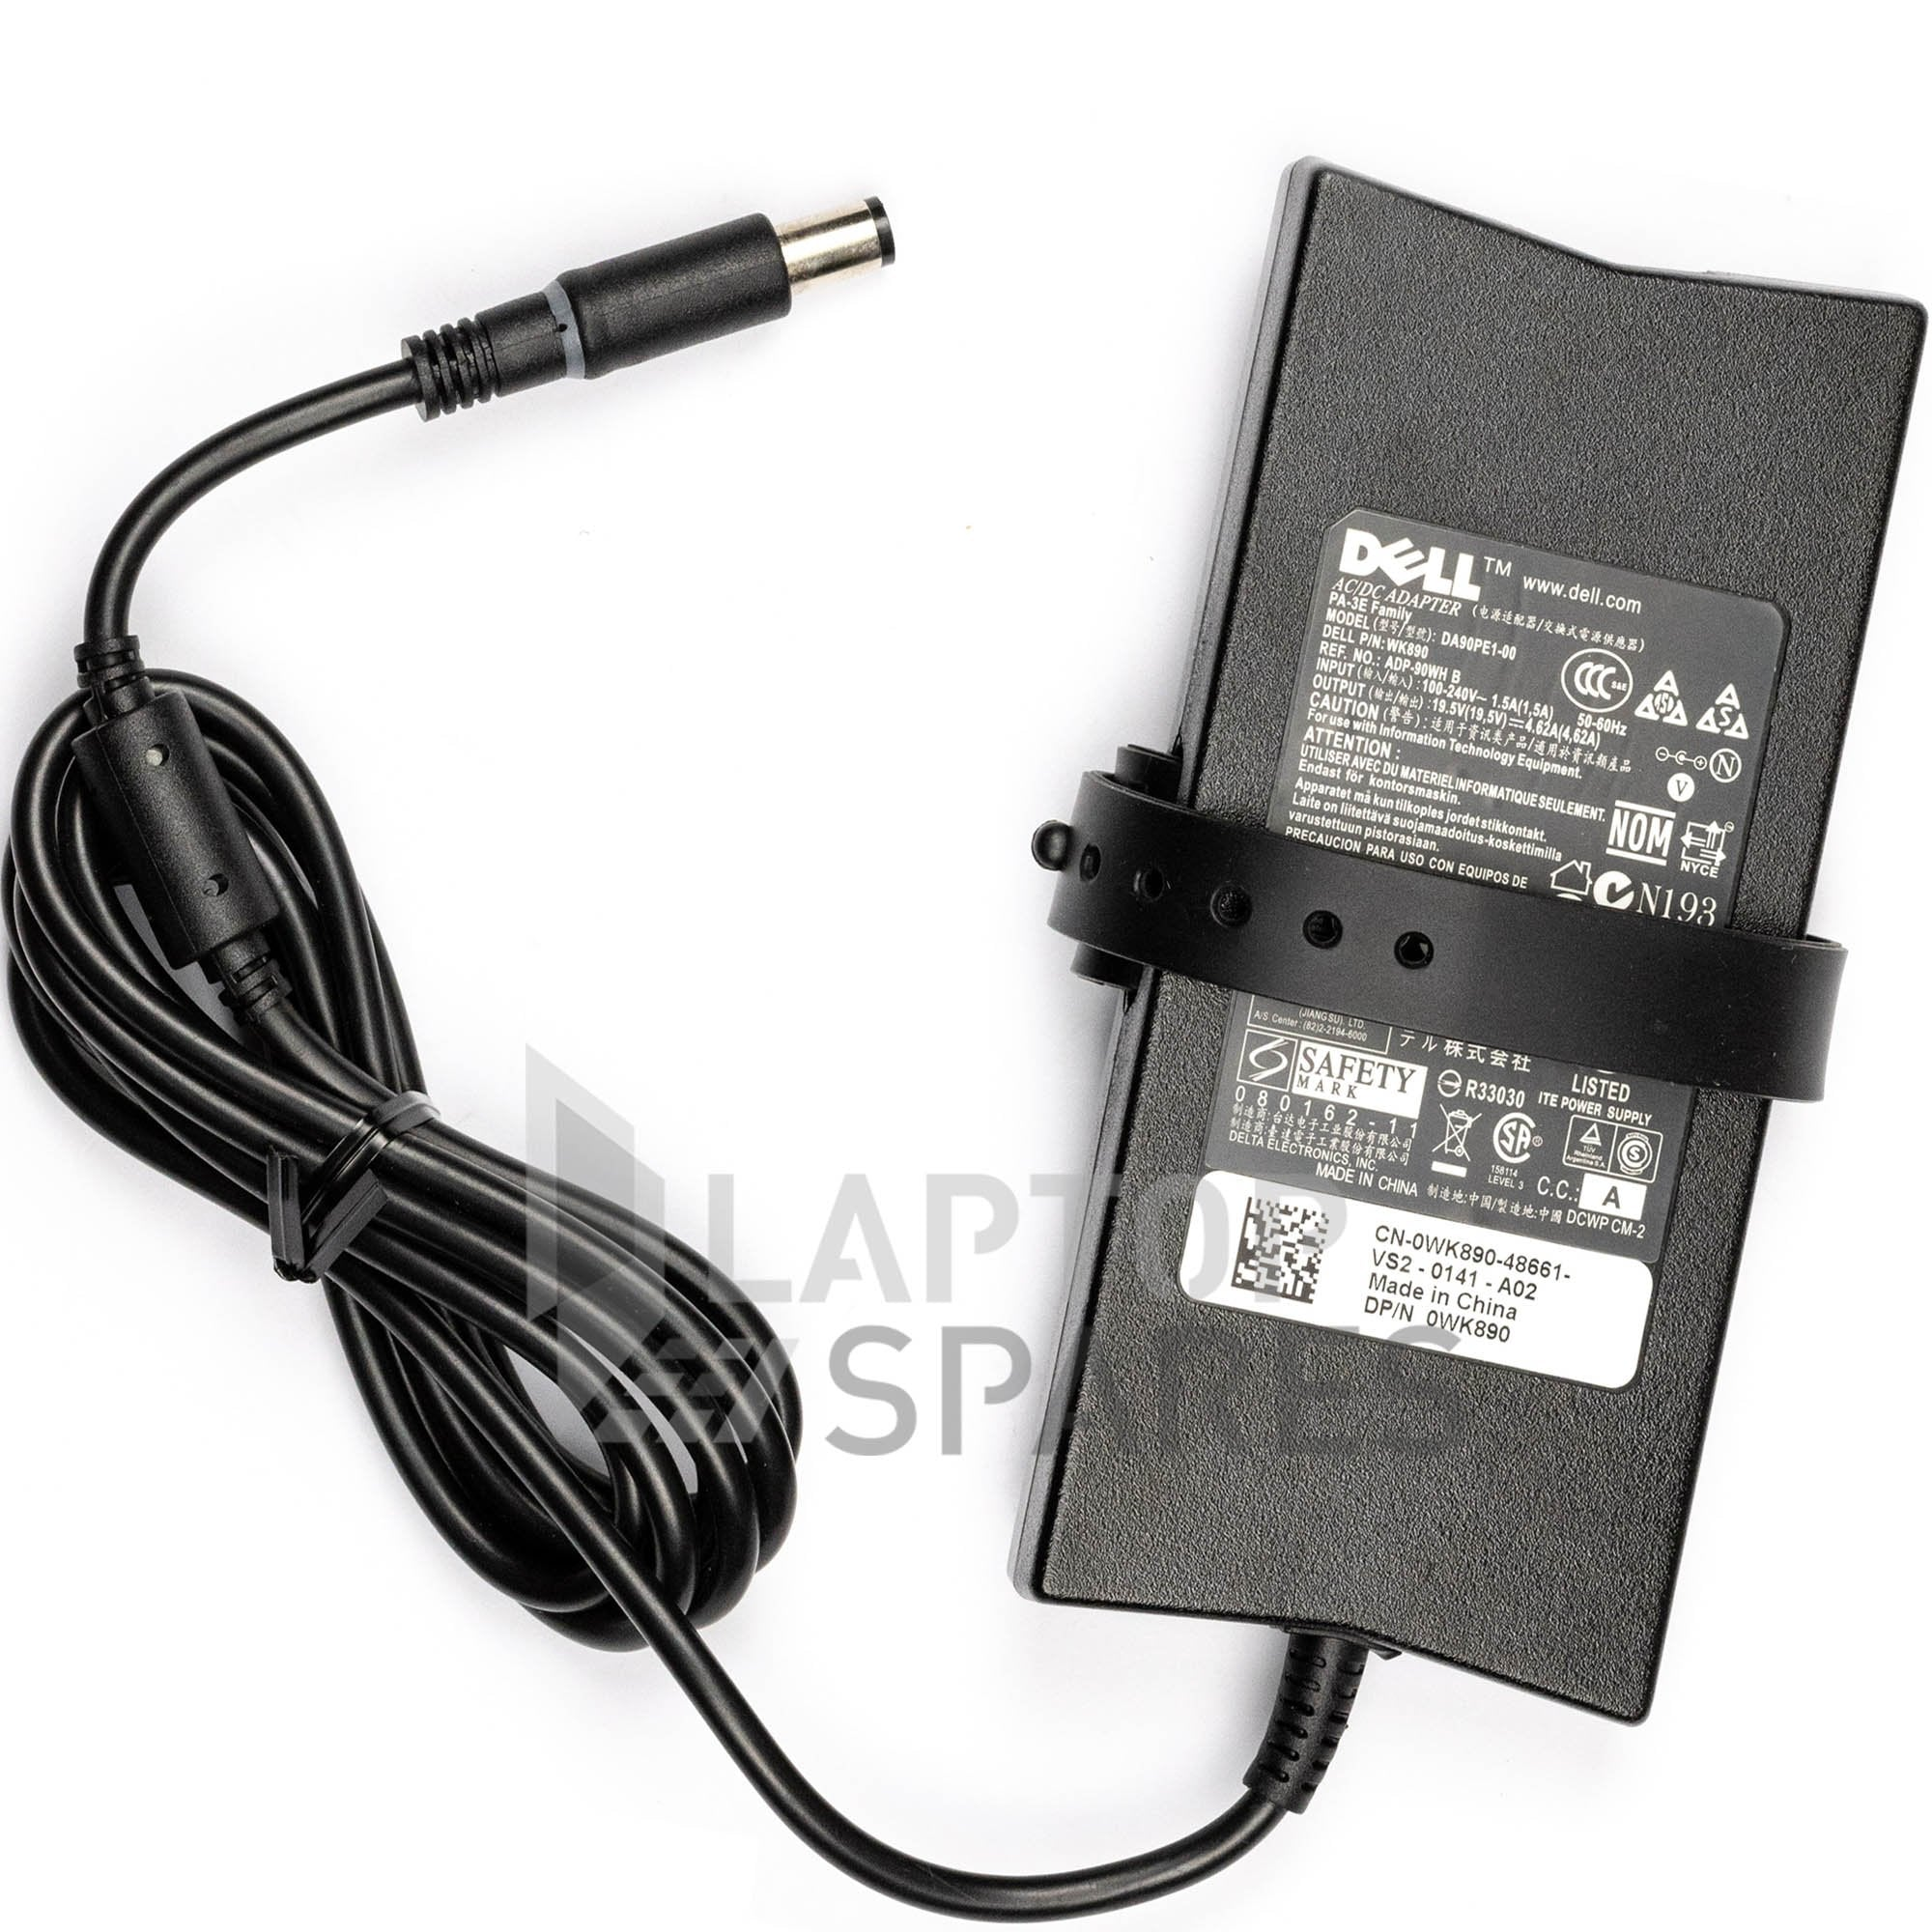 Dell Inspiron 1720 1721 Laptop Slim AC Adapter Charger